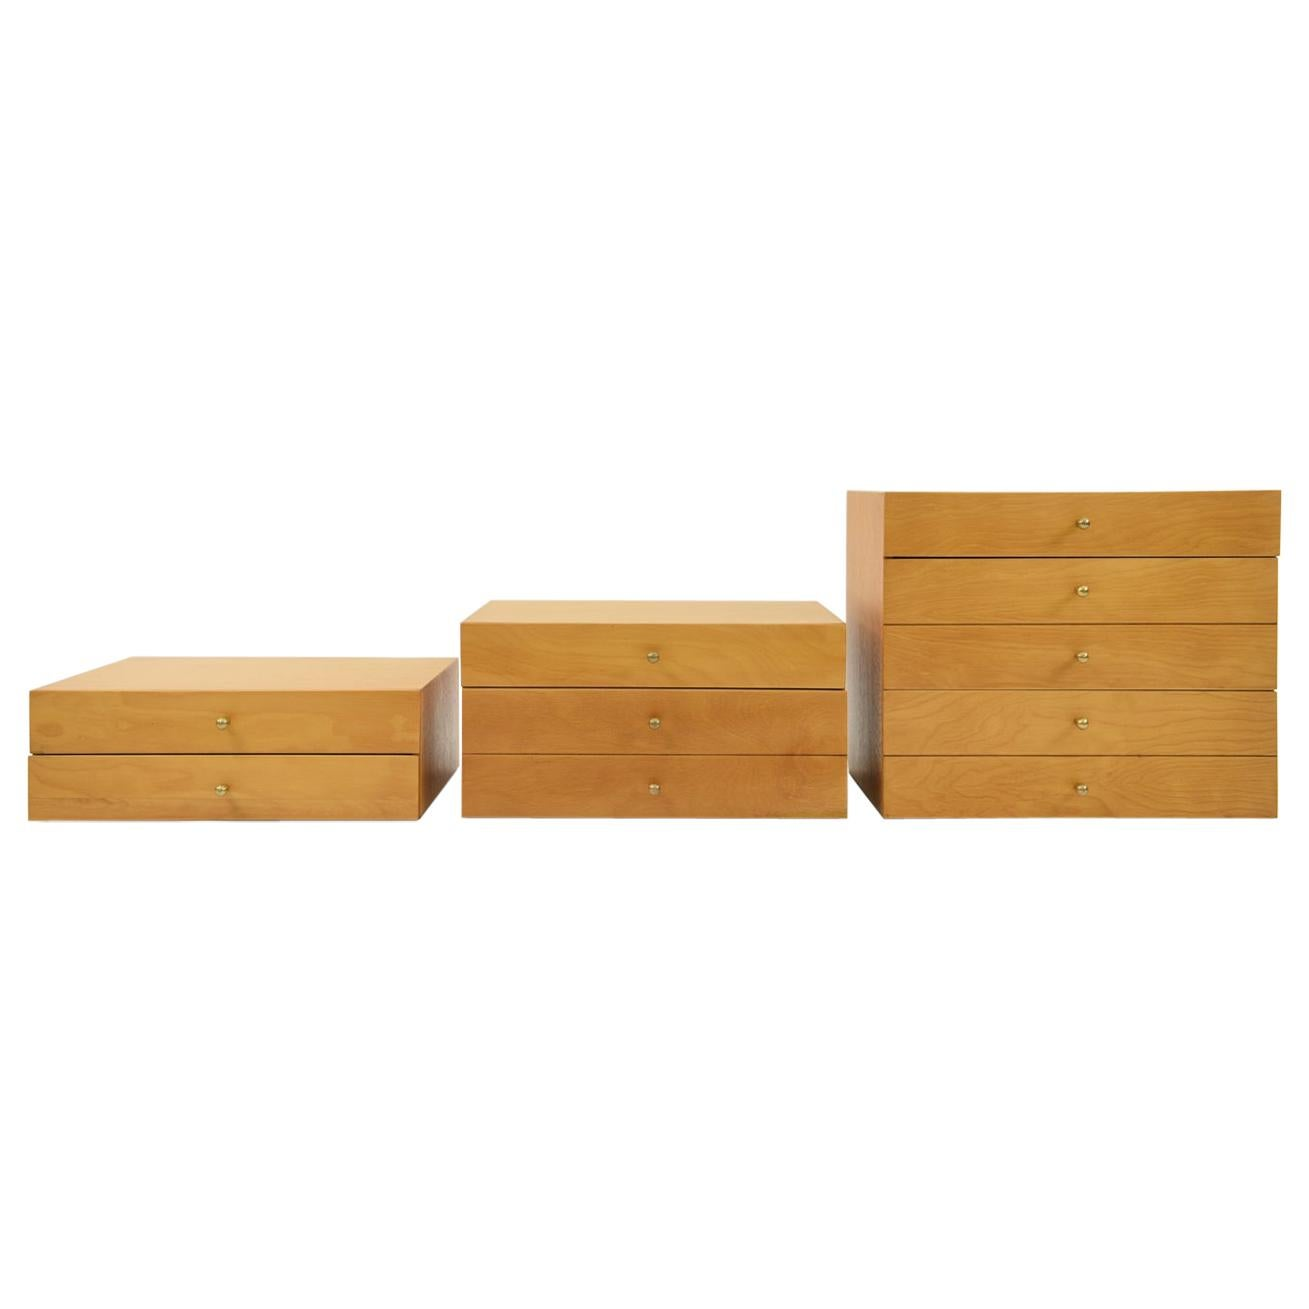 Set of 3 Midcentury Miniature Stacking Chests Attributed to Arthur Umanoff